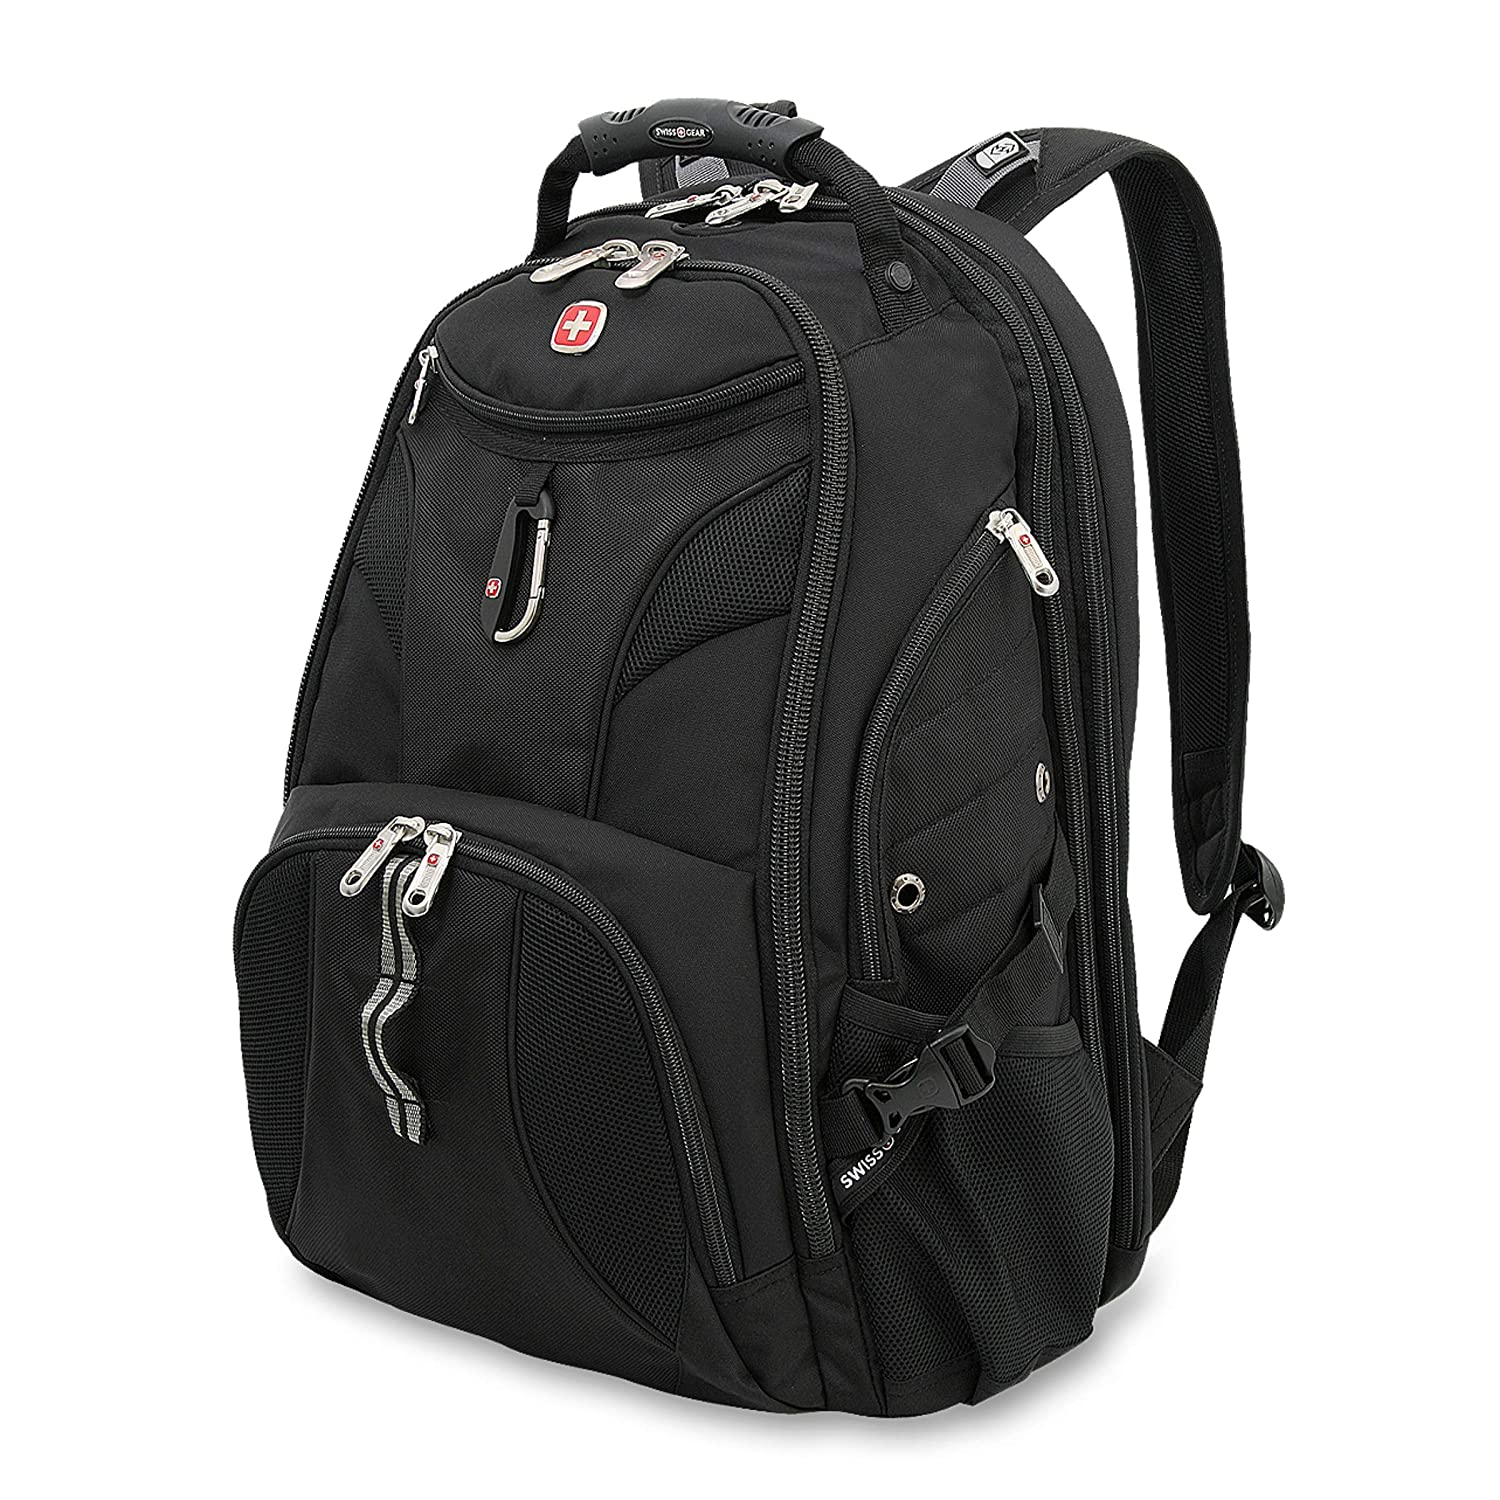 SwissGear Laptop Backpack For Air Travel